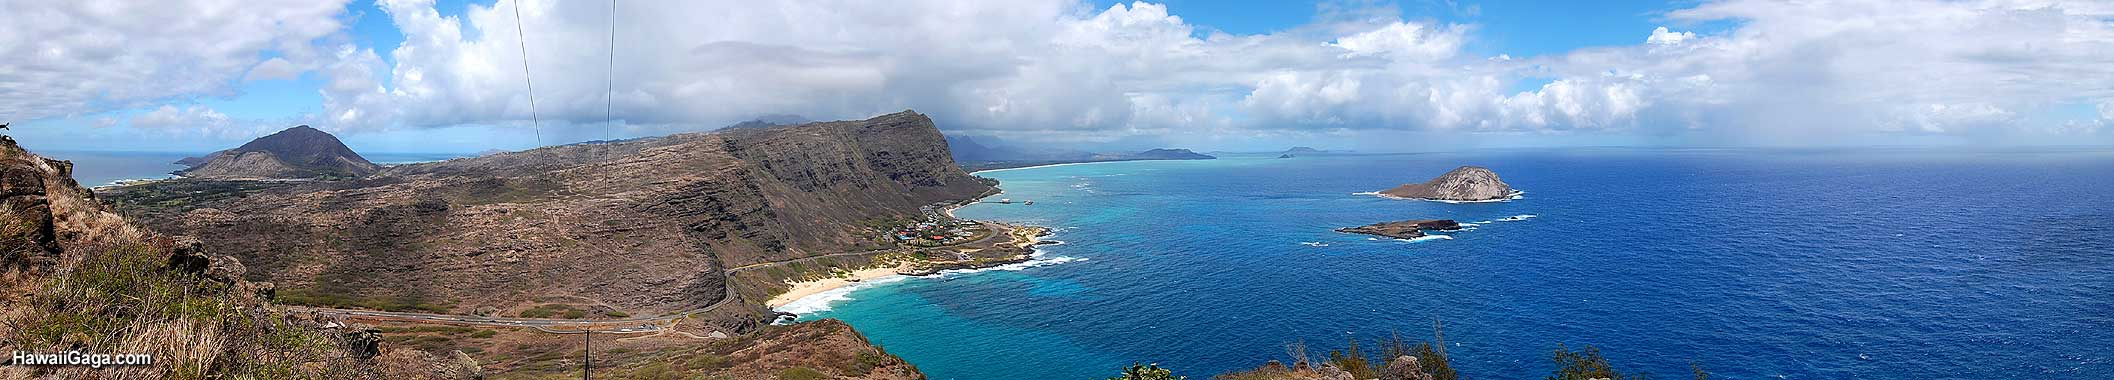 Makapuu Lookout panorama